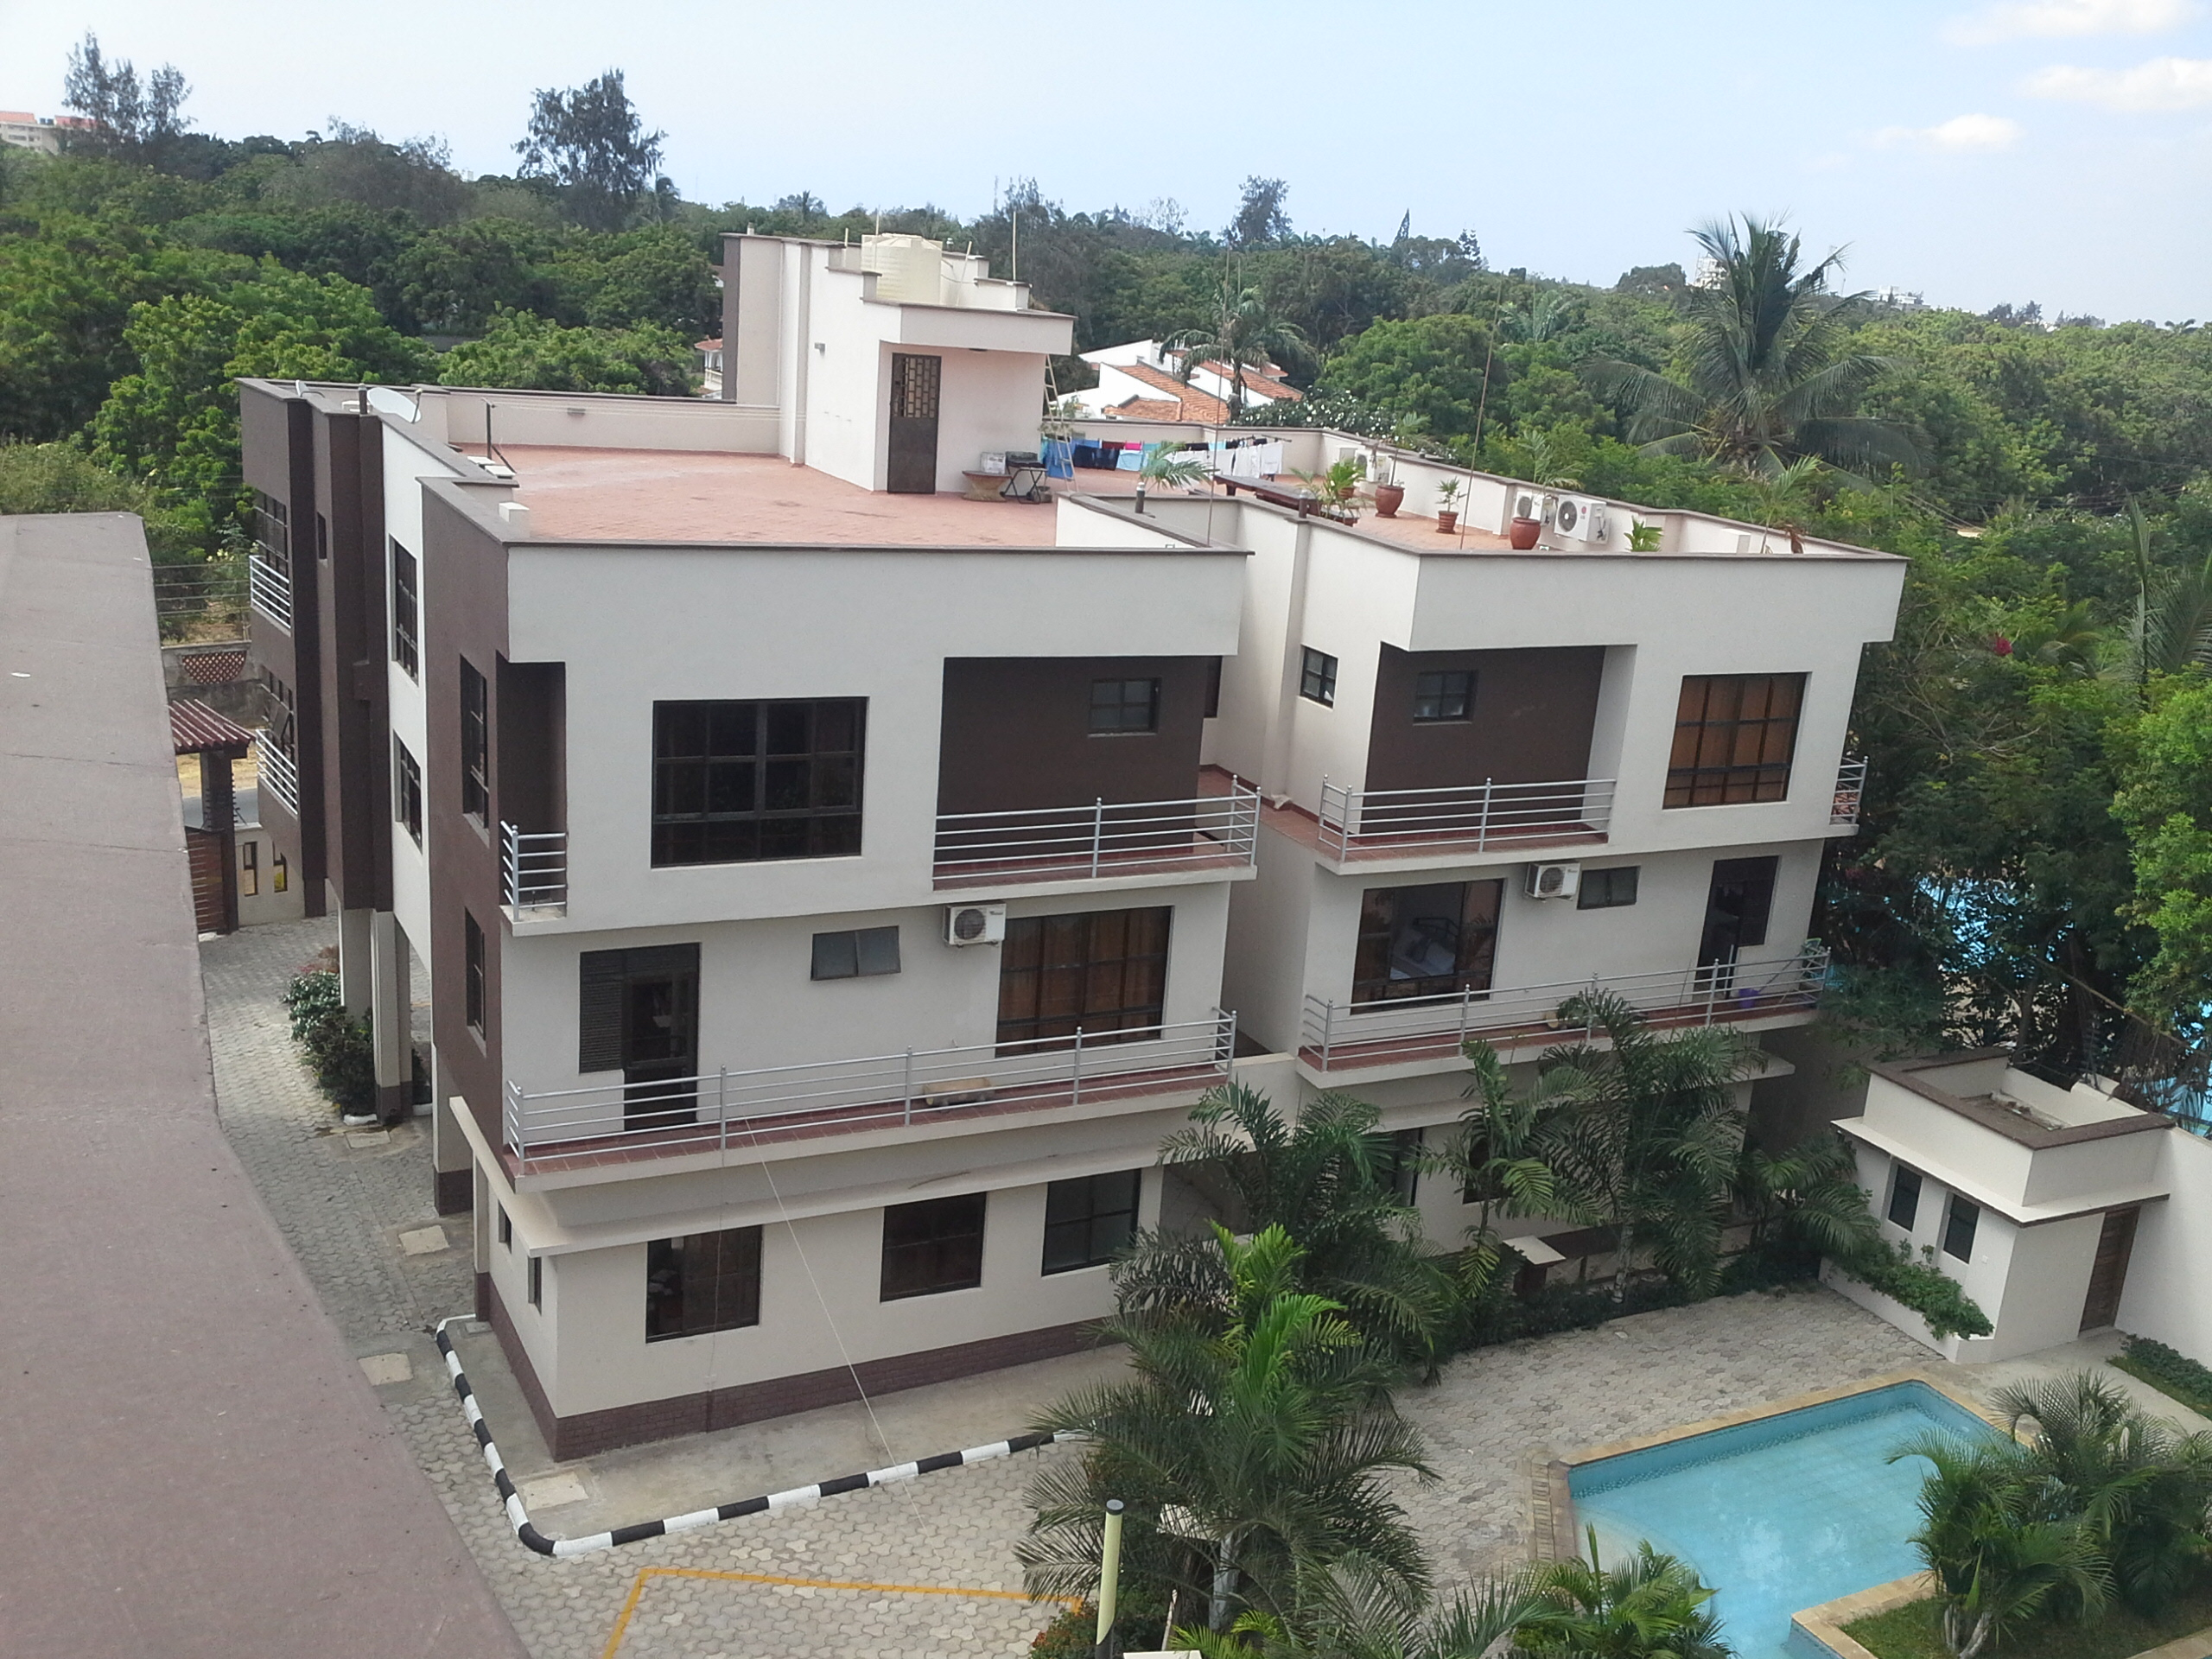 JUPITER HEIGHTS - MOYNE DRIVE (OLD NYALI), MOMBASA